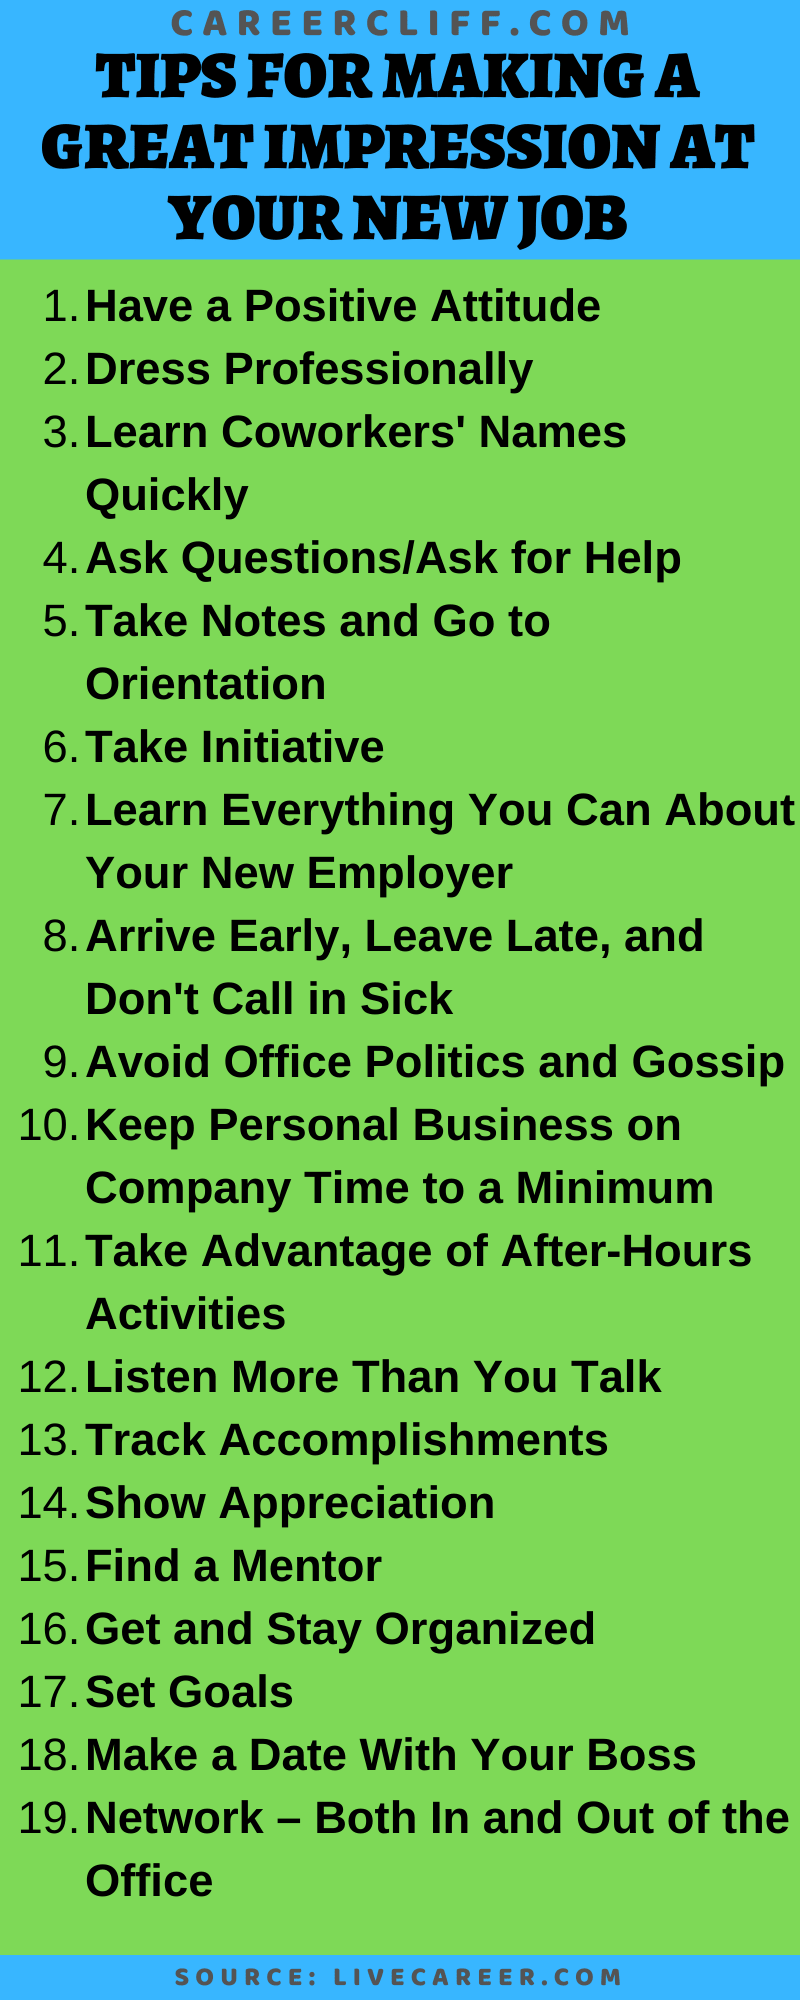 how to make a good impression on your first day of work  how to make a good impression at a new job how to make good impression at new job first impression at work how to make a good impression on your first day of work making a good impression at new job how to make an impression at work how to make a good impression in a new job new job how to make a good impression